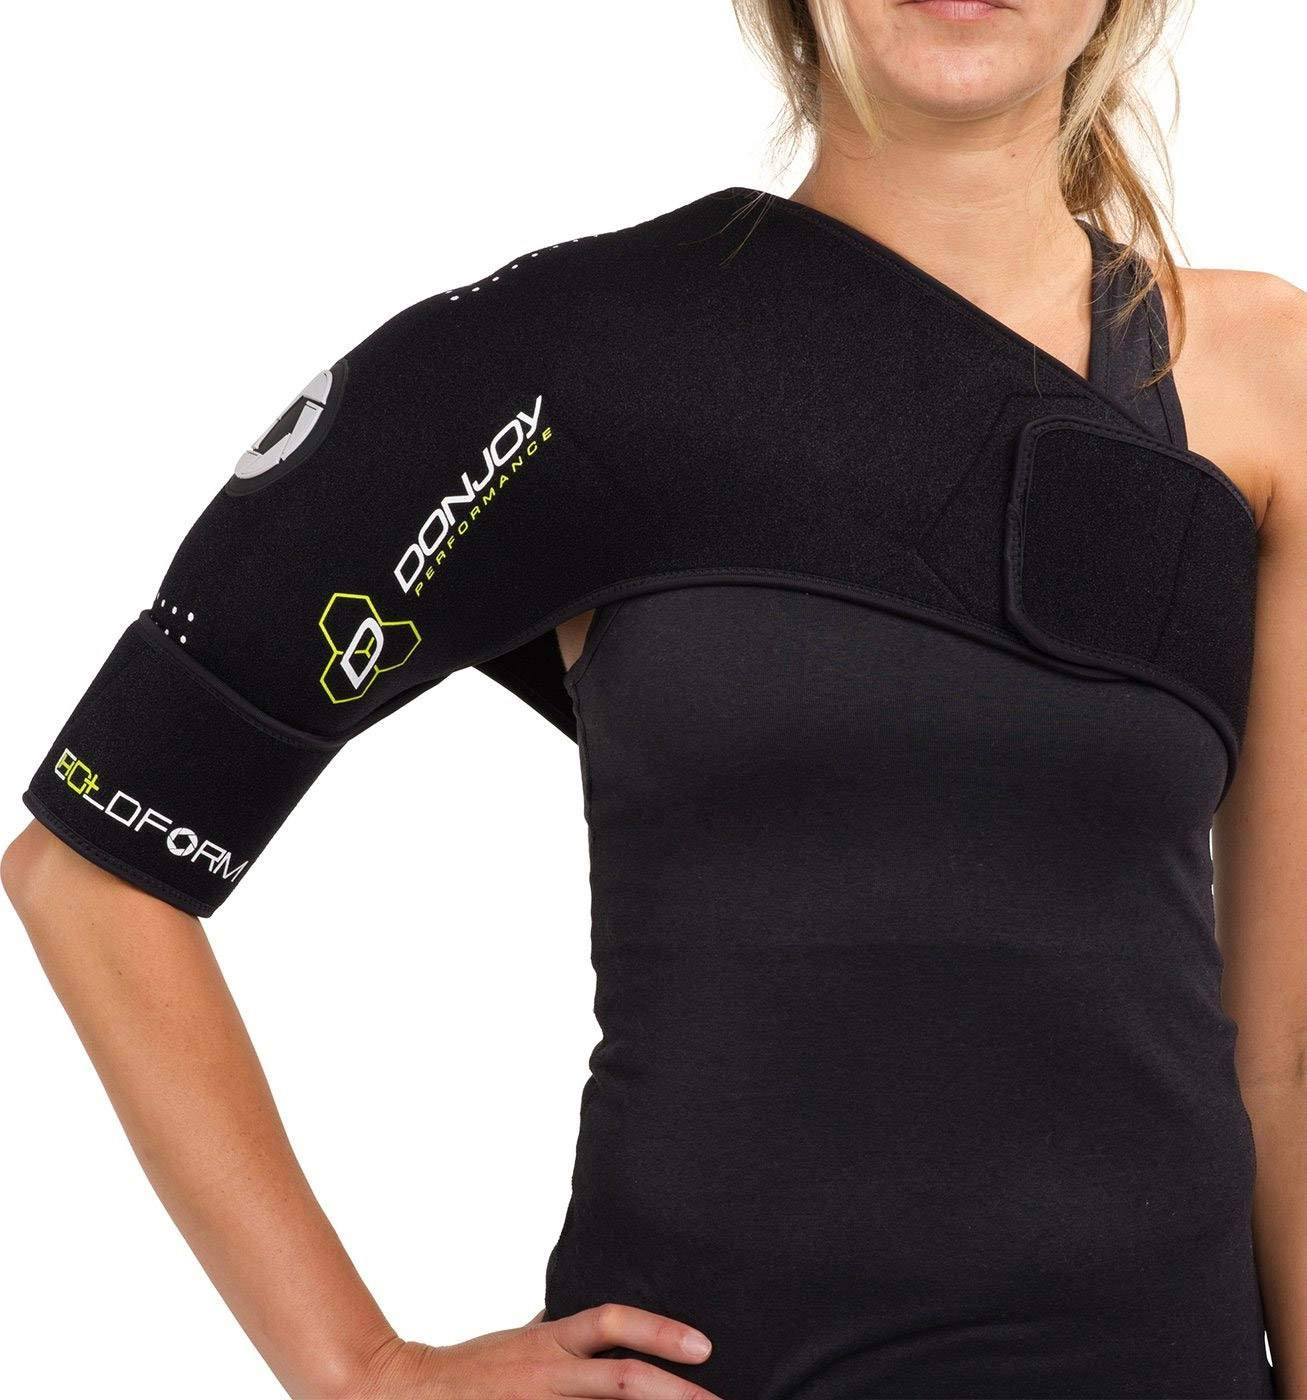 DonJoy Performance COLDFORM Hot/Cold Therapy: Shoulder Compression Wrap, One Size Fits Most by DonJoy Performance